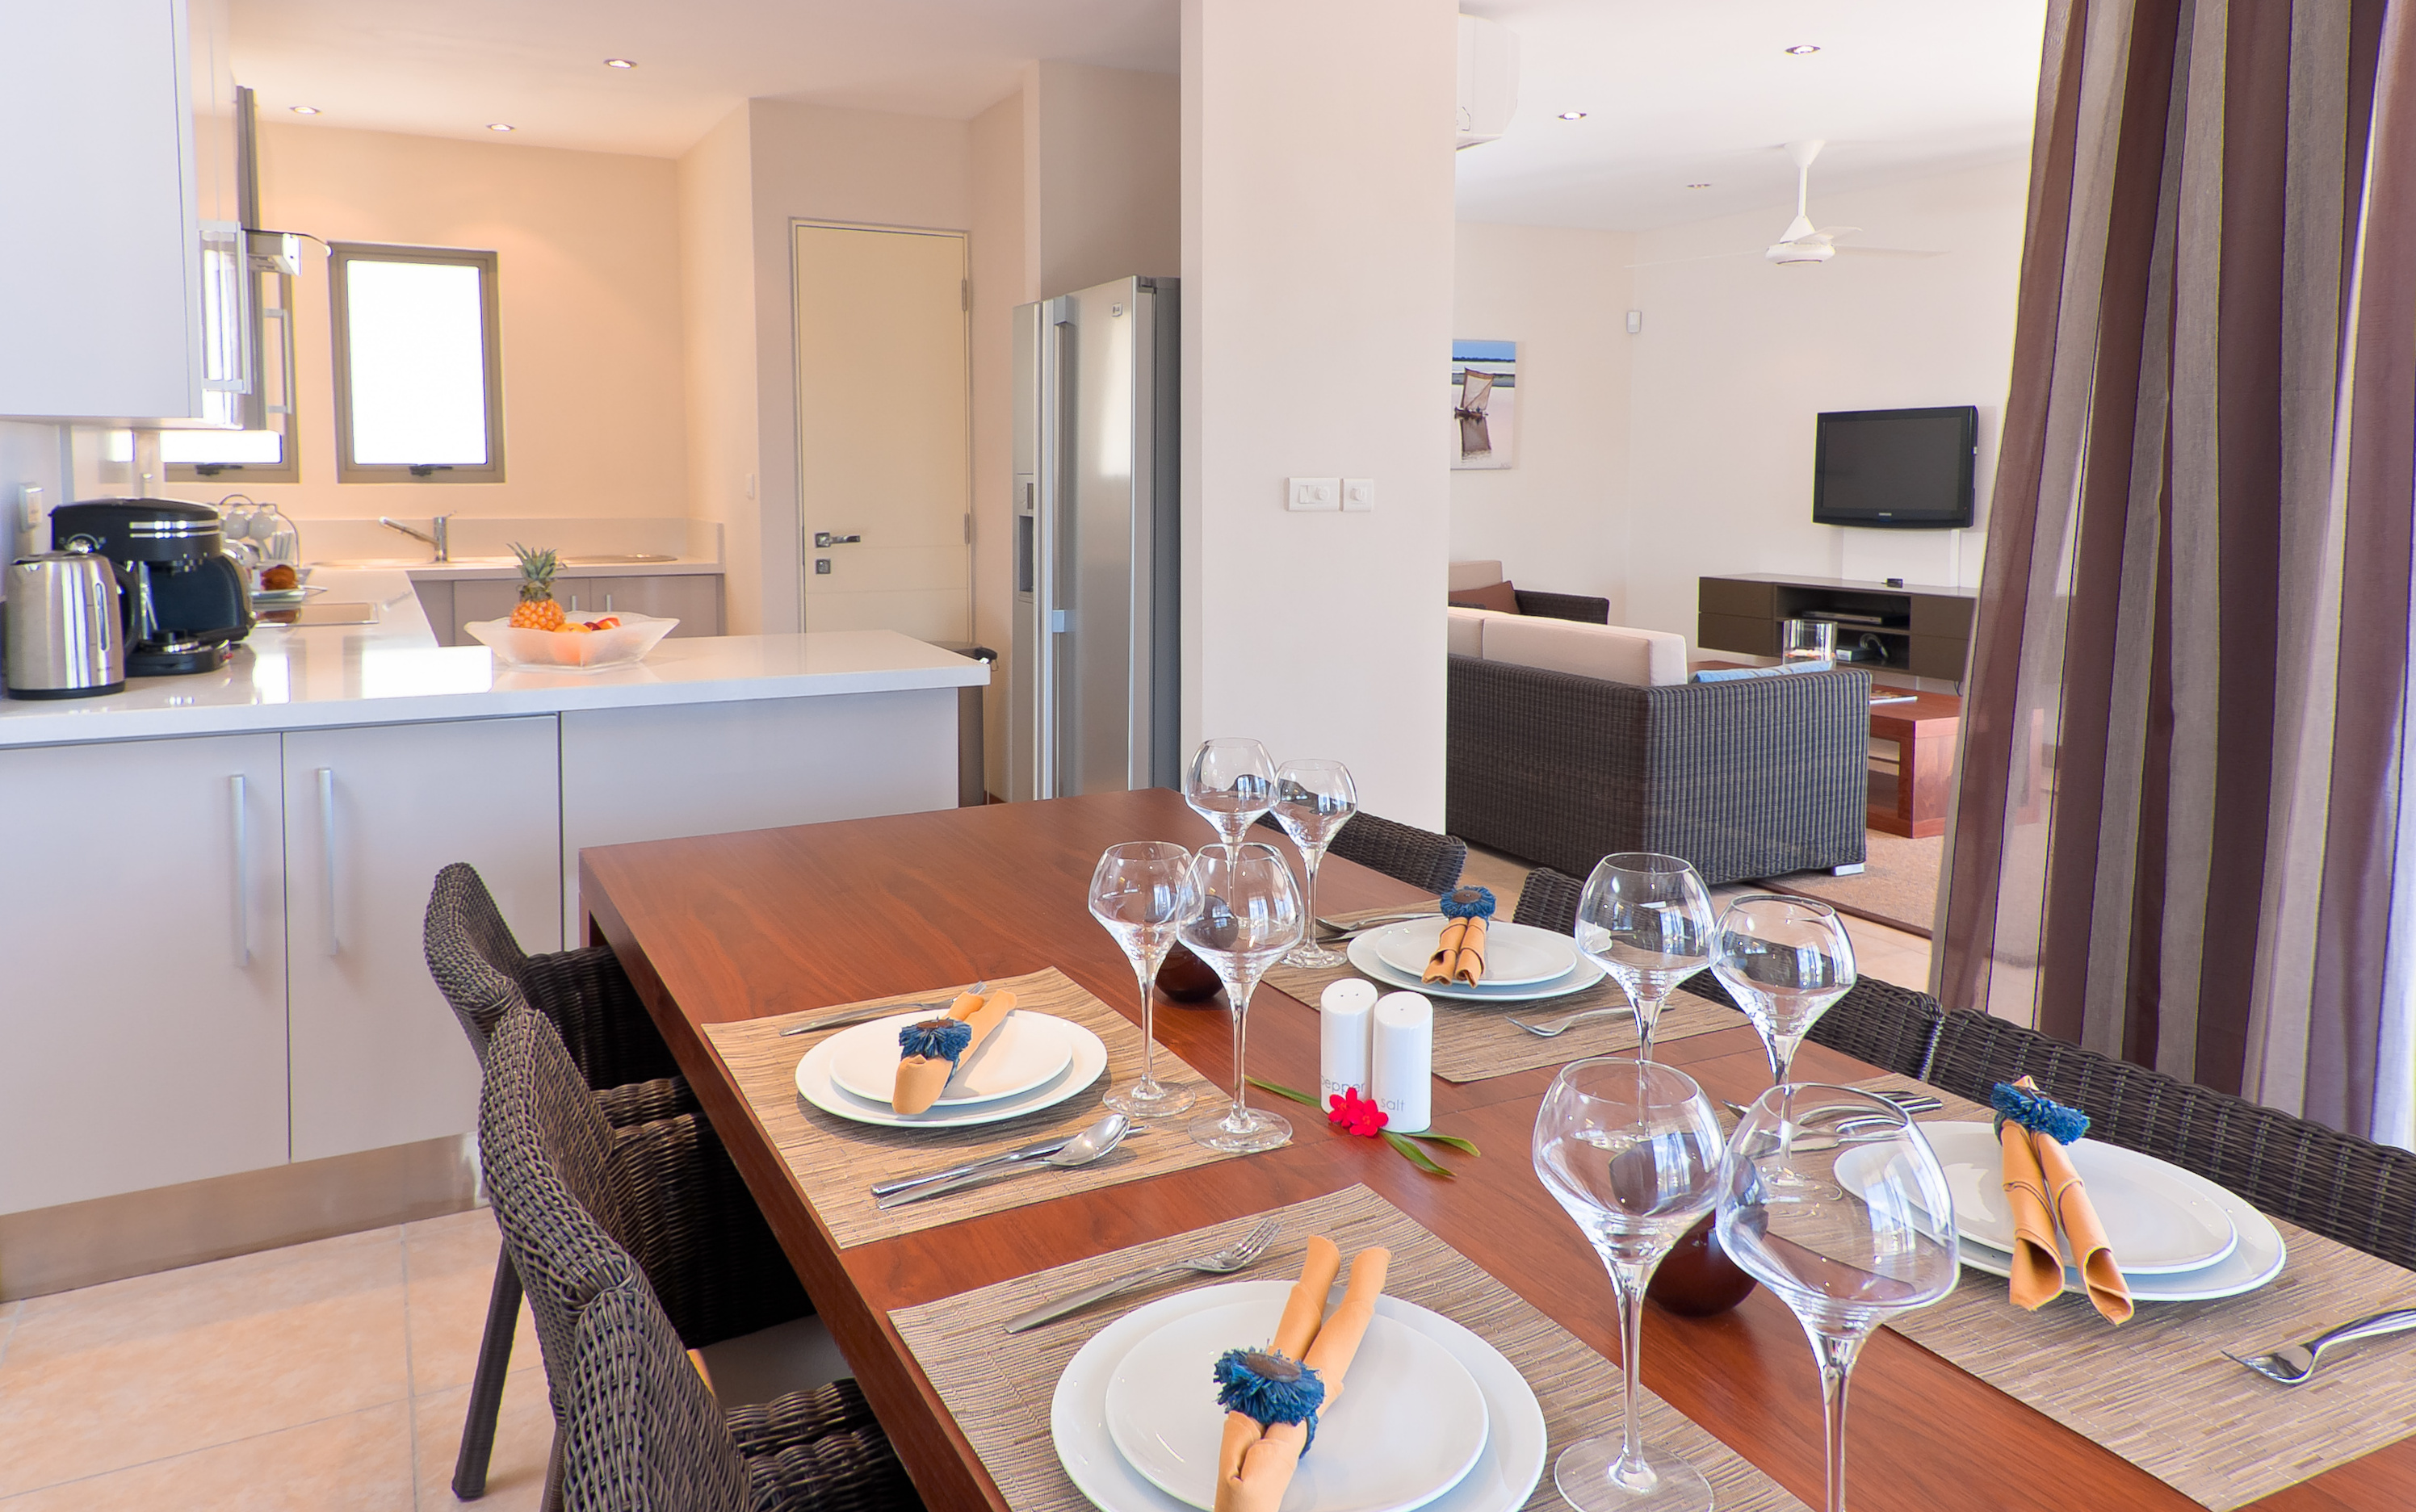 Bon Azur Elegant Suites & Penthouses Fully Equip Kitchen Interior dinning area Lounge